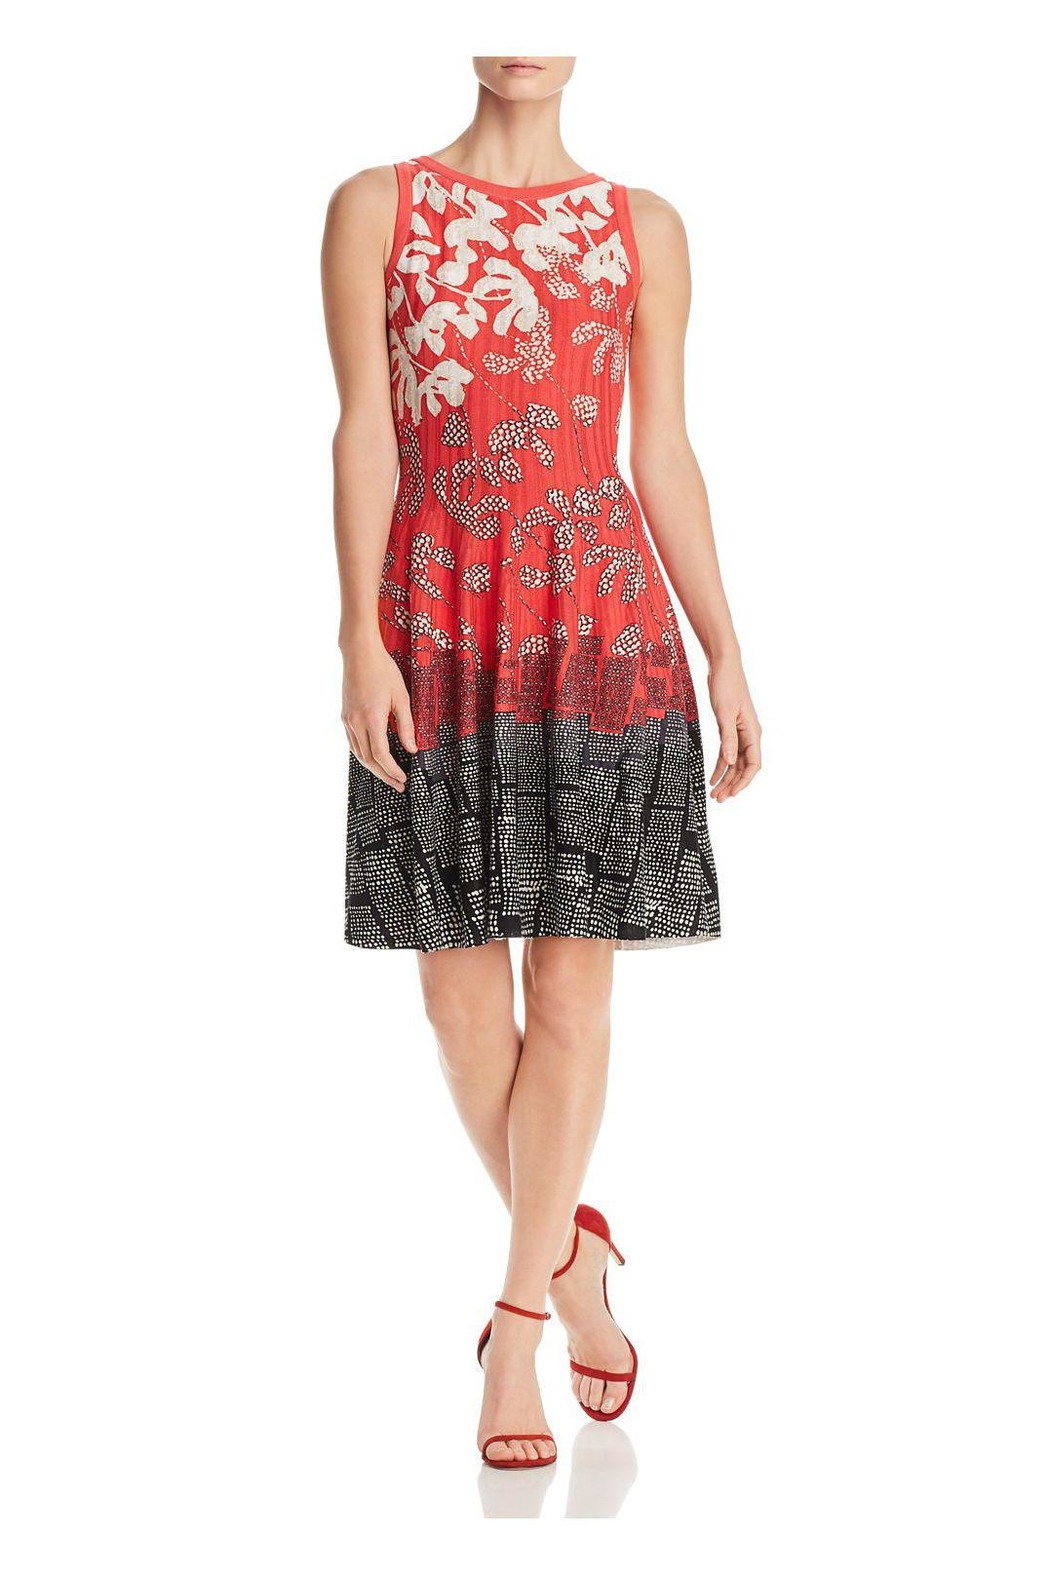 Nic + Zoe Terrace Twirl Dress - Main Image